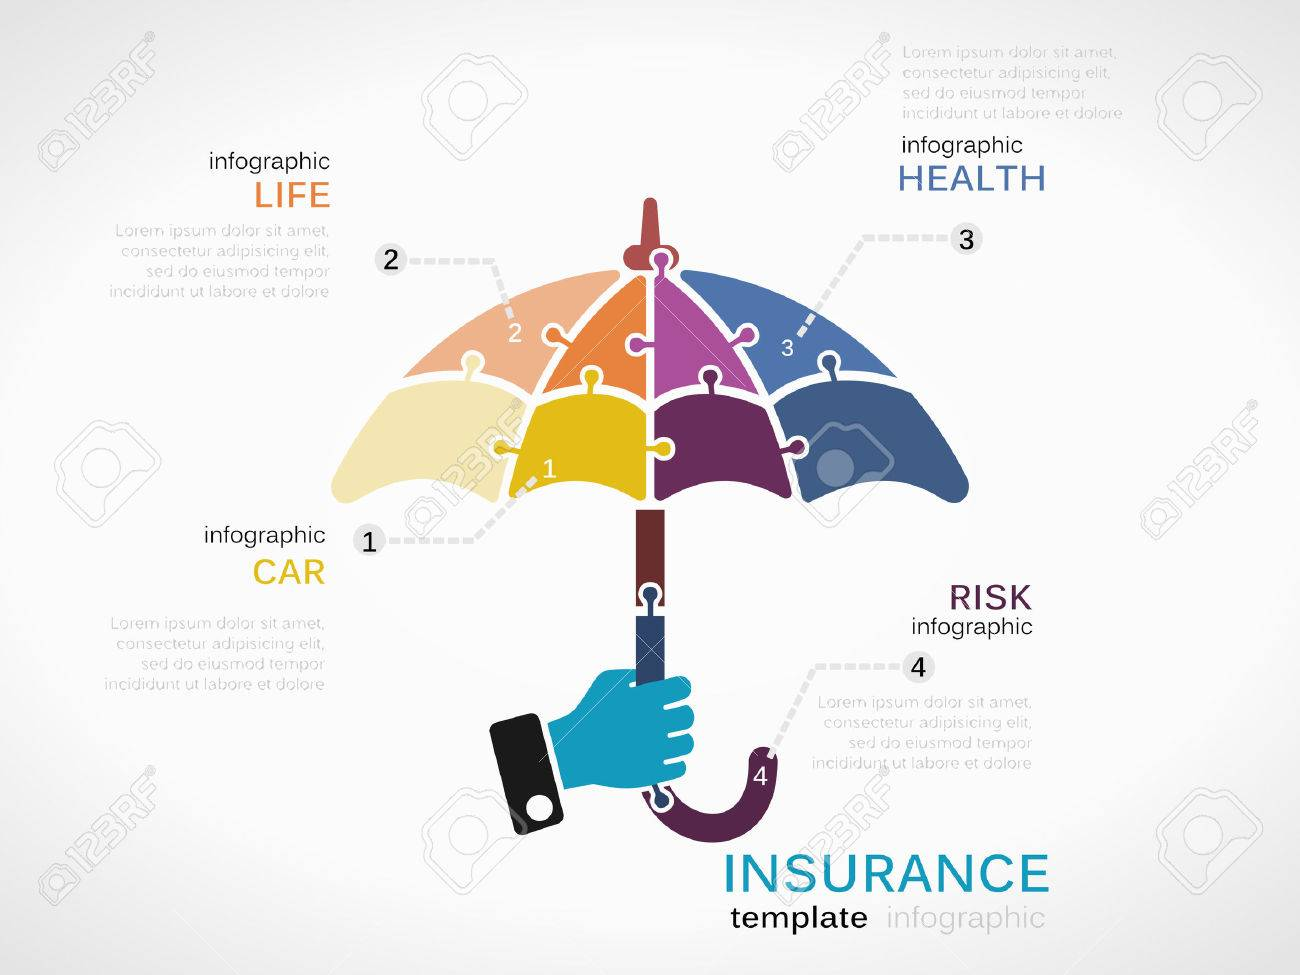 insurance infographic template  Insurance Concept Infographic Template With Umbrella Made Out ...